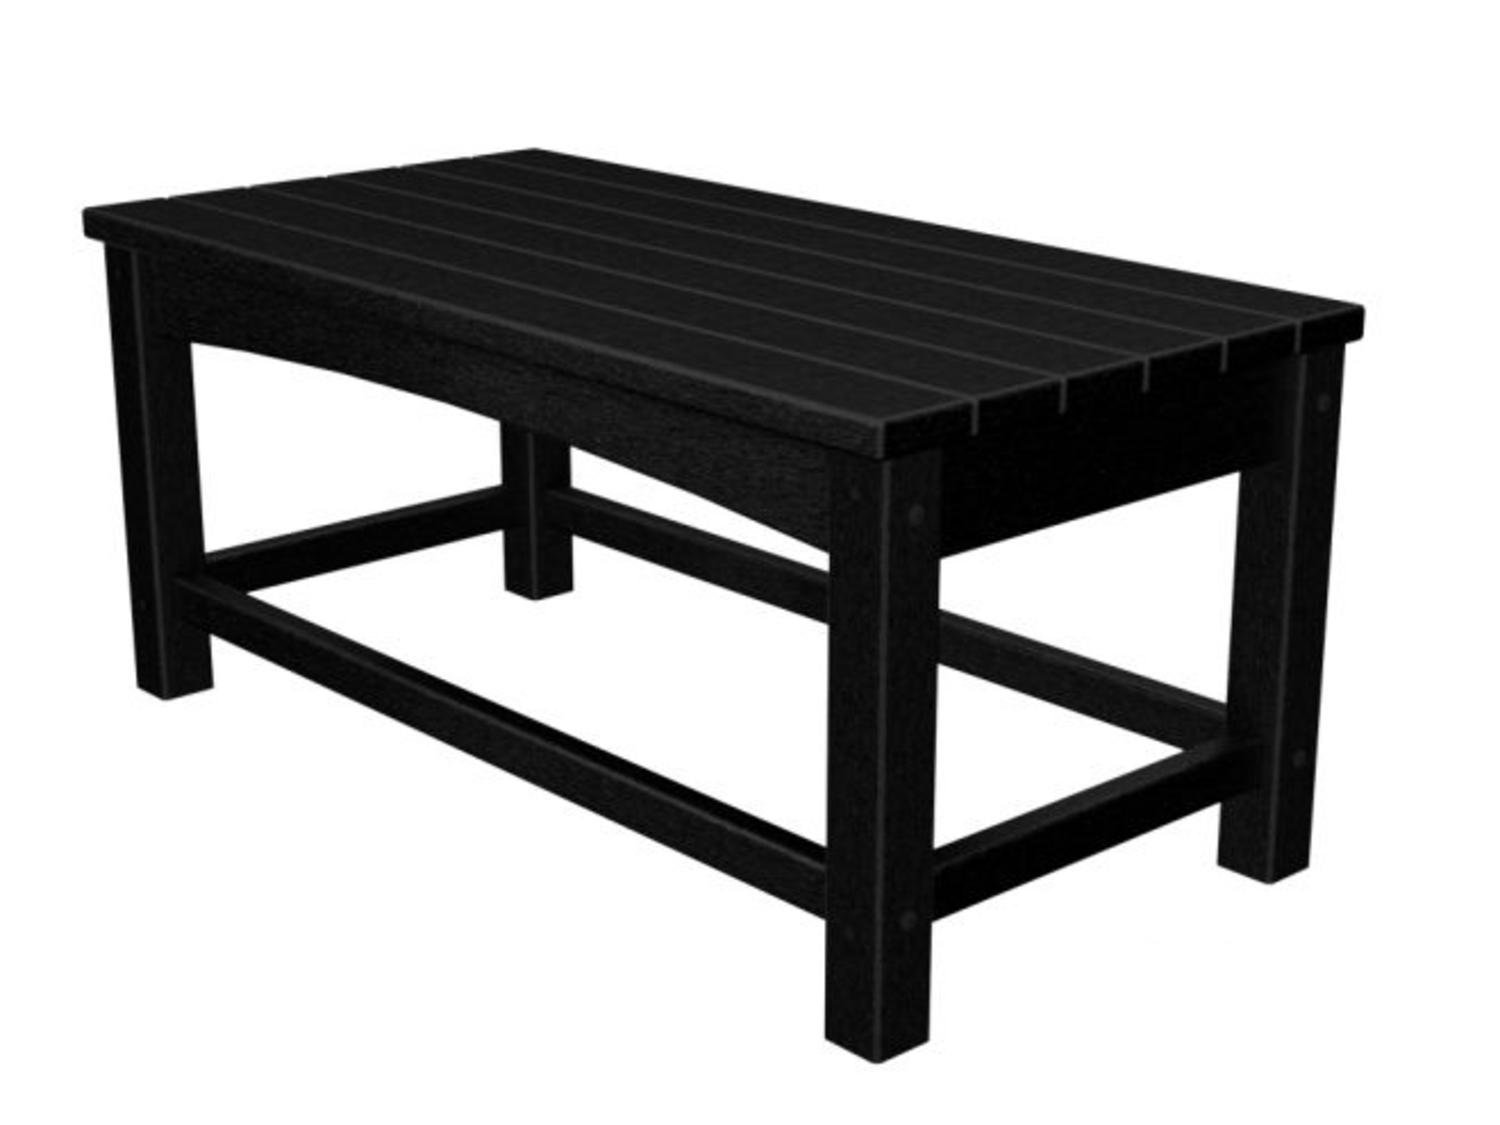 """35.5"""" Recycled Earth-Friendly Outdoor Patio Club Coffee Table - Black"""